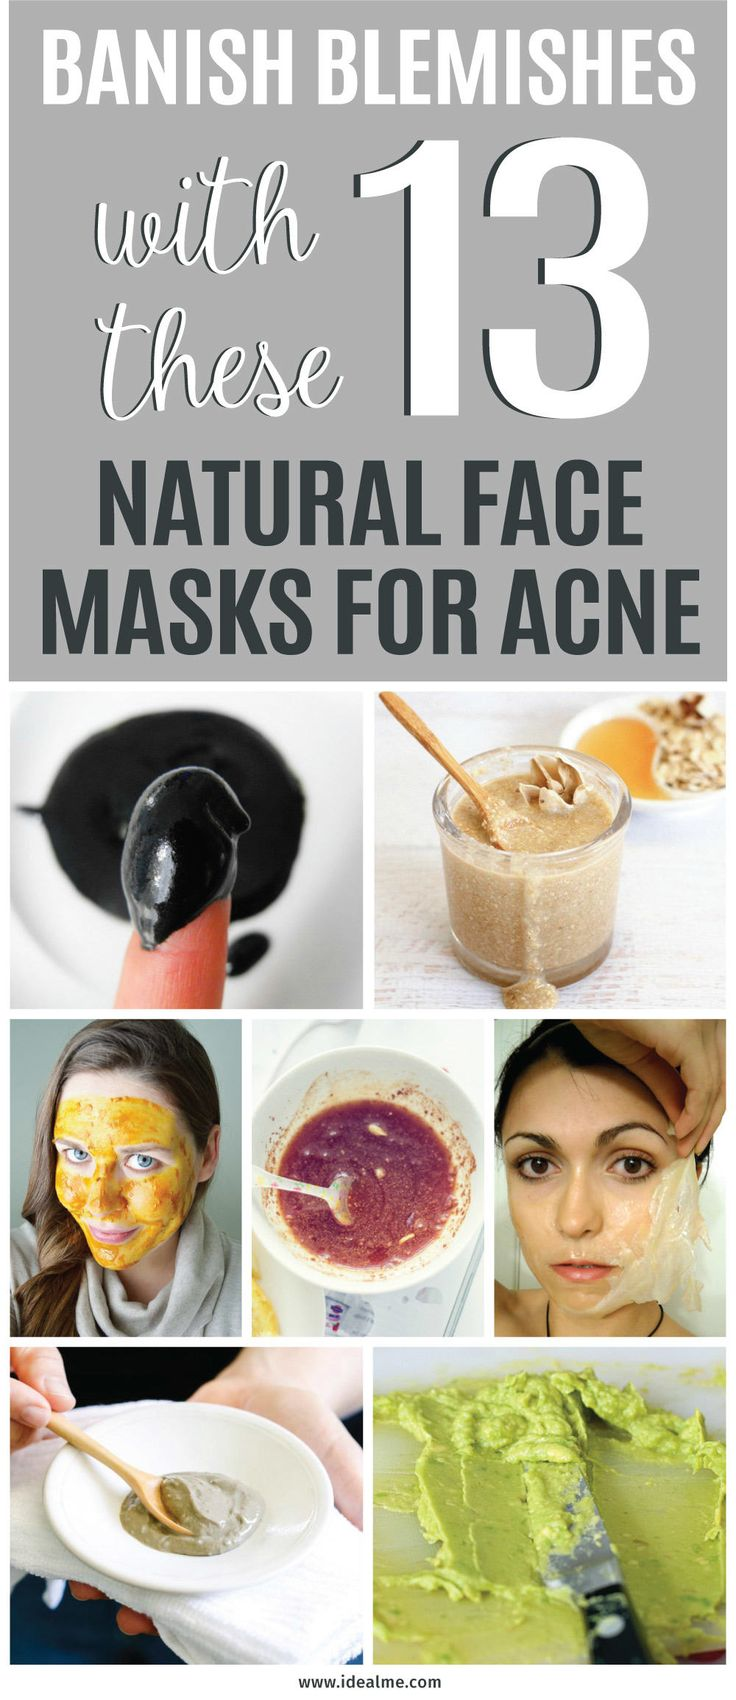 If you're tired of looking in the mirror and seeing problem skin, banish blemishes with these 13 natural face masks for acne.